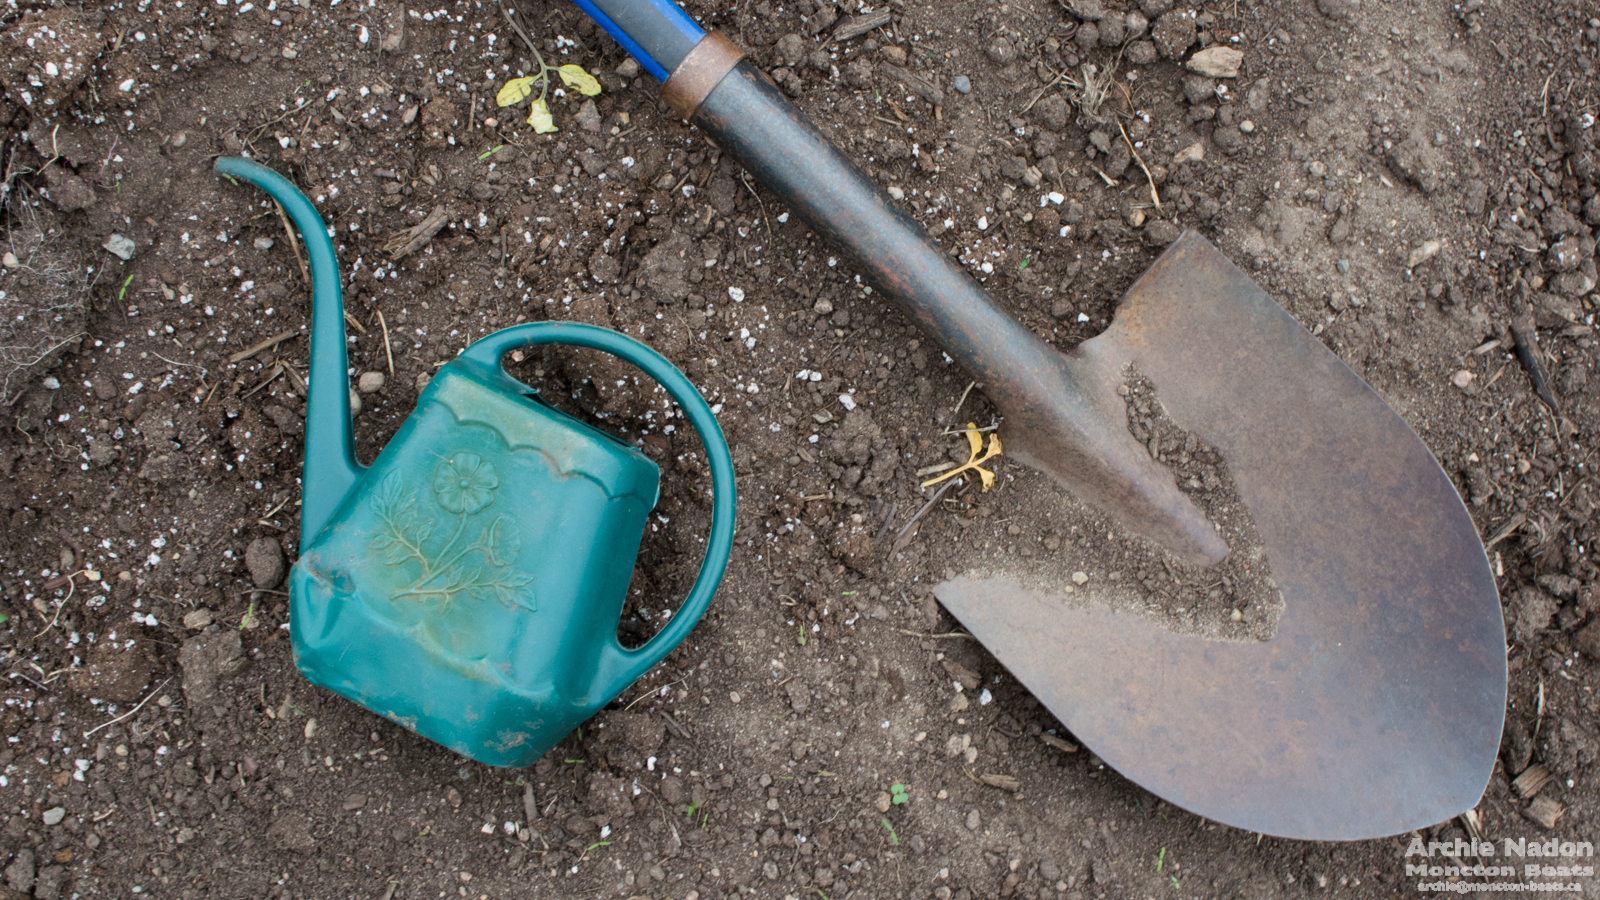 watering can and shovel on dirt background